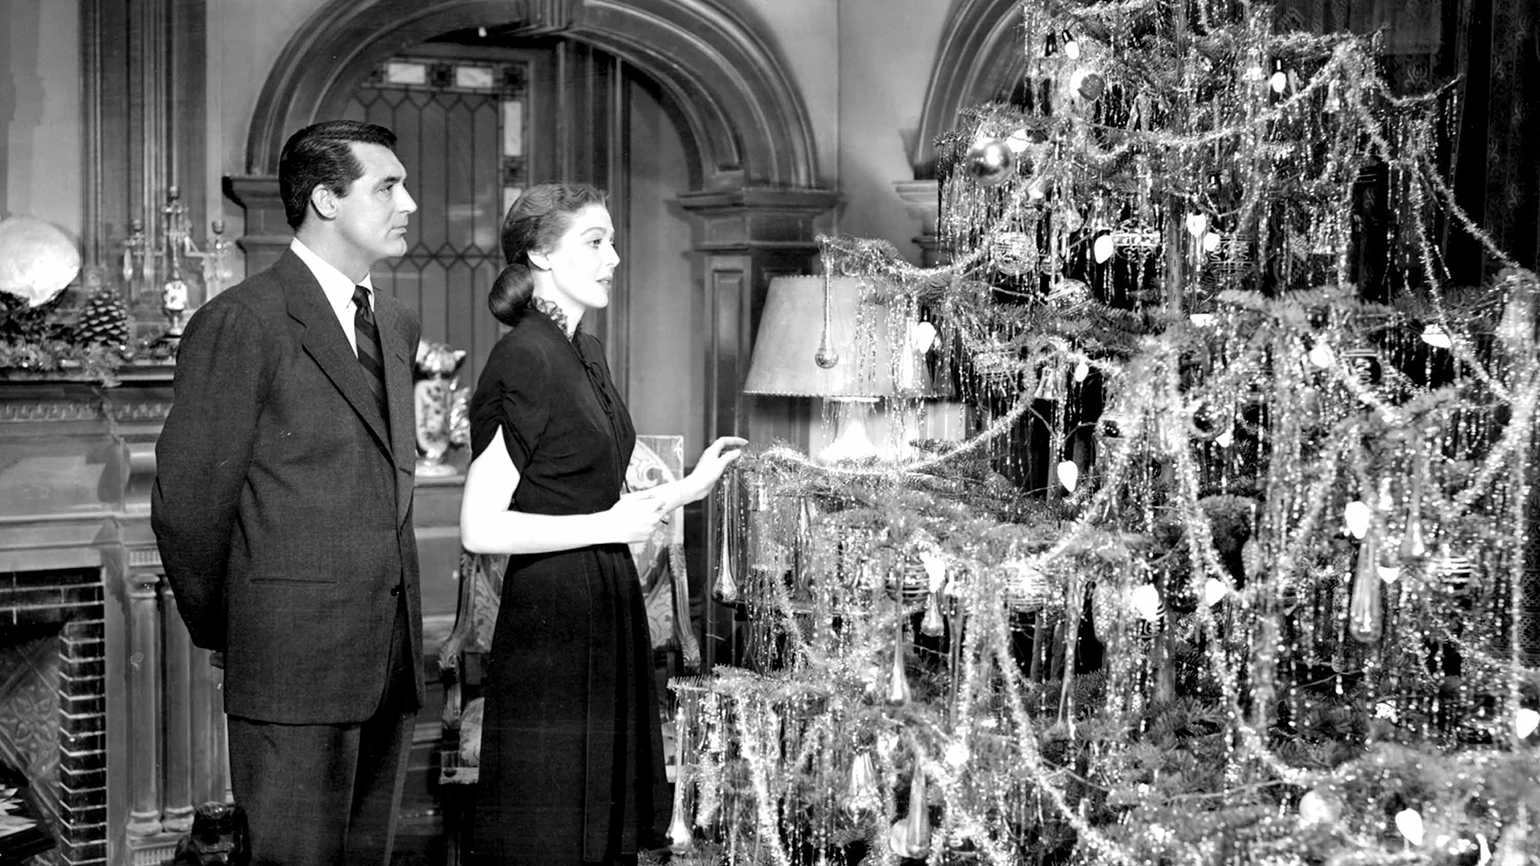 Cary Grant and Loretta Young in a scene from 'The Bishop's Wife'